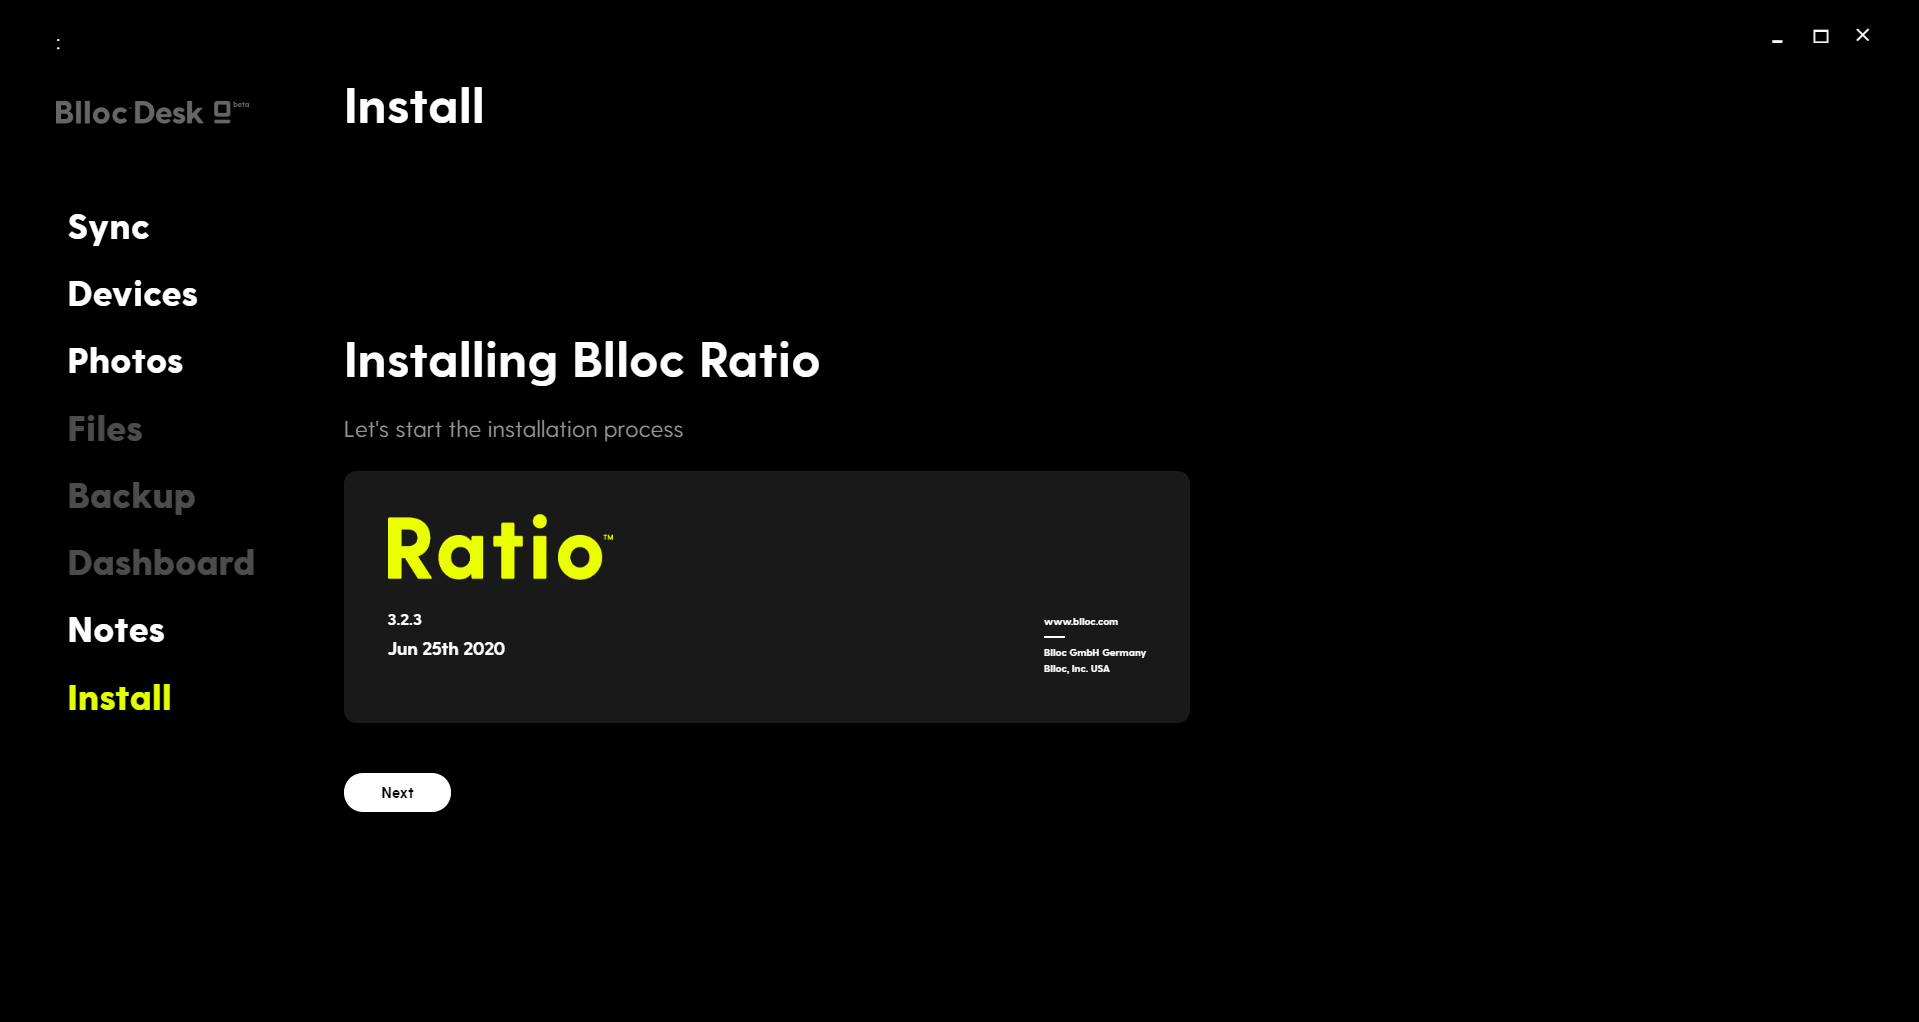 Install Ratio Launcher Via Blloc Desk App